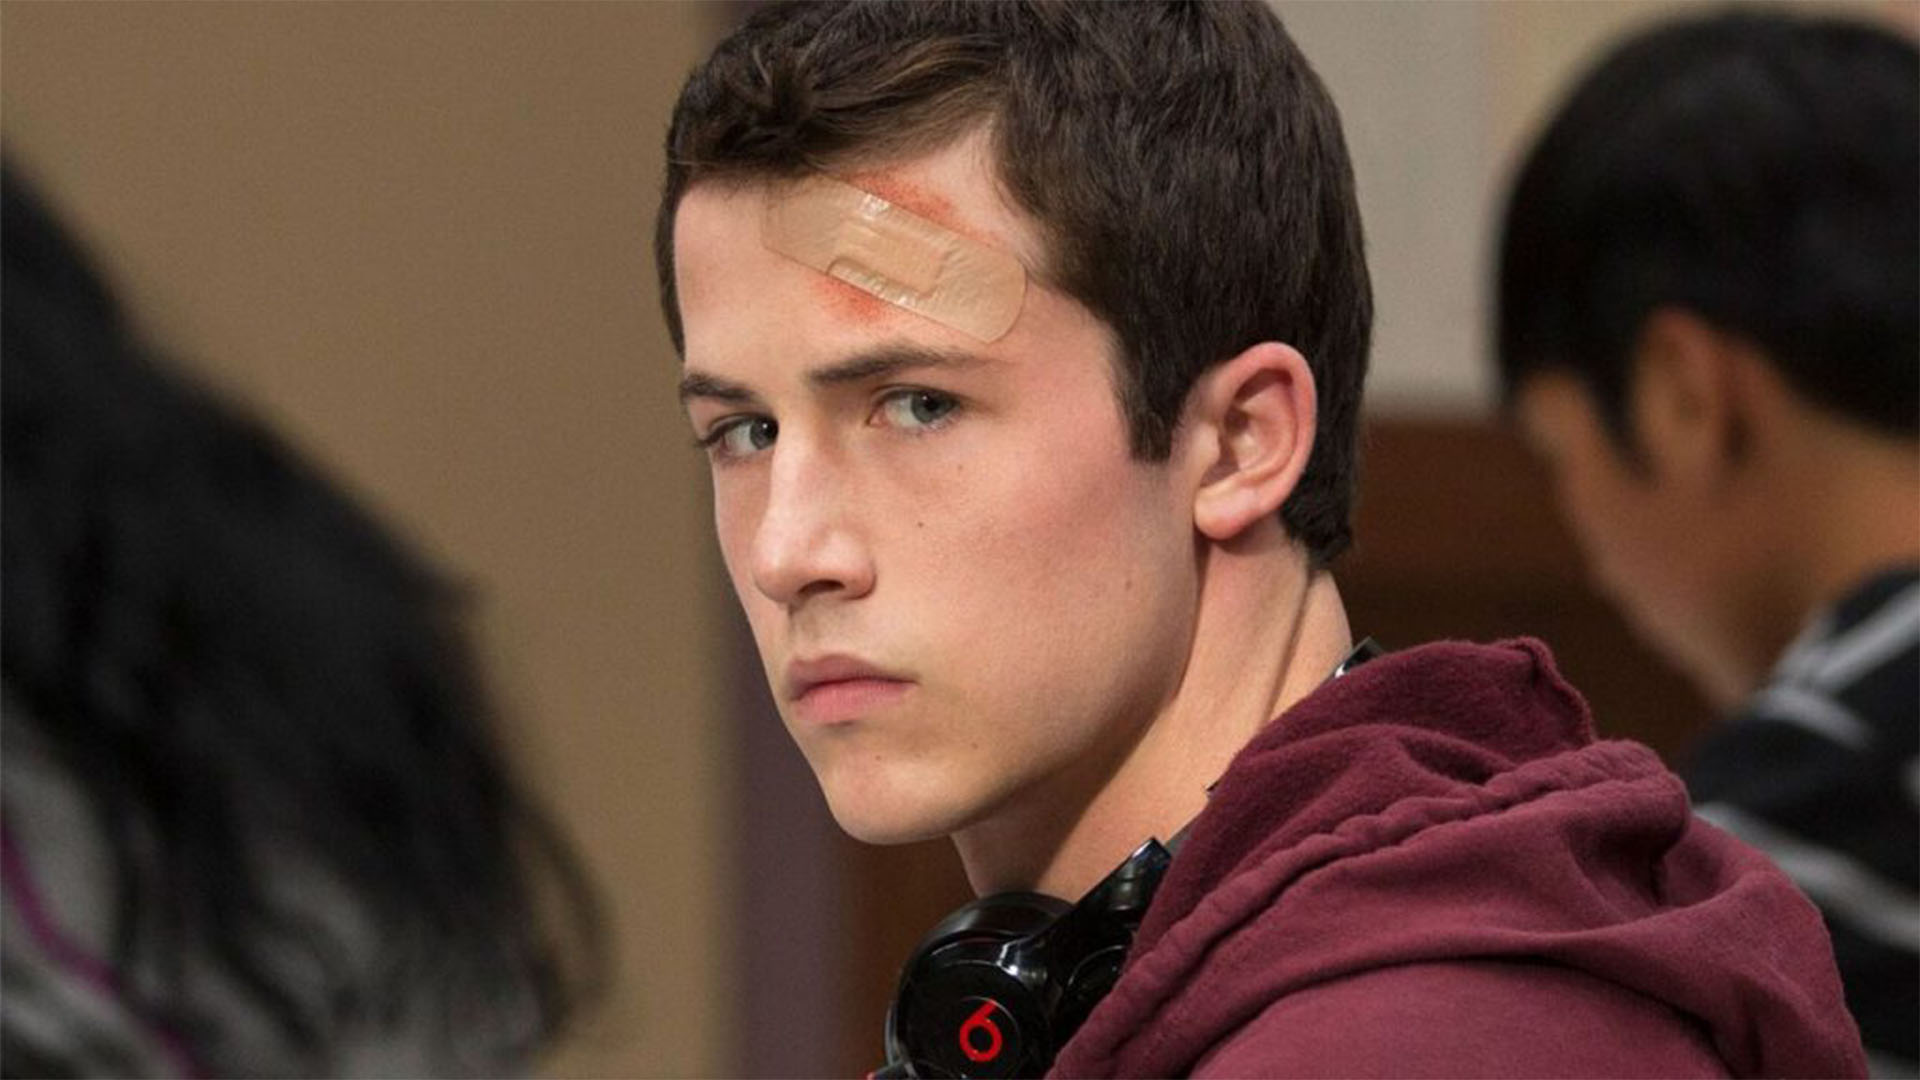 13reasonsFEATUREDIMAGE